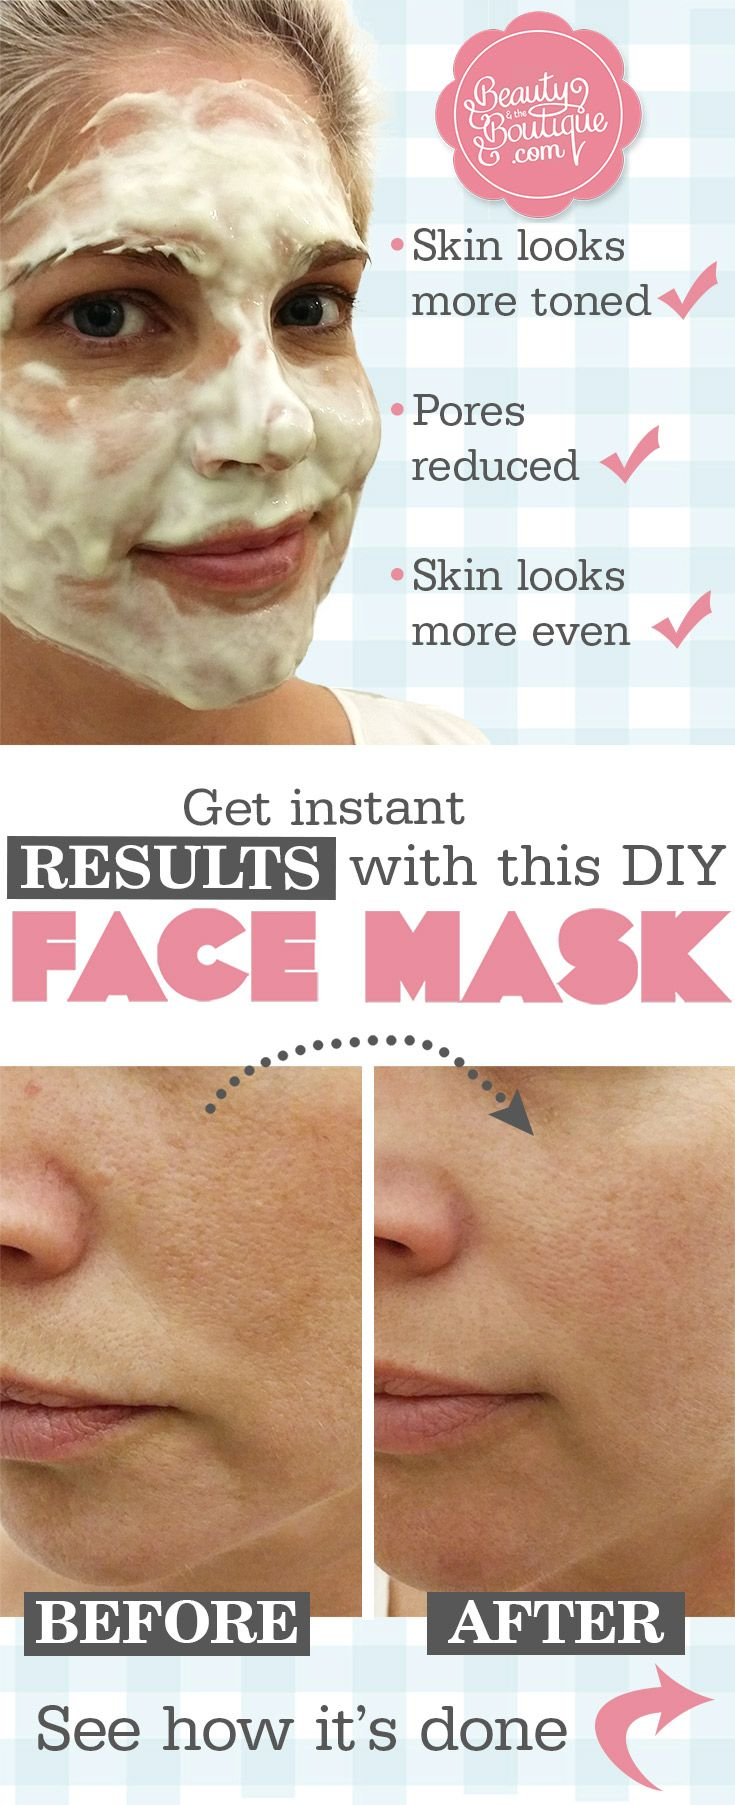 Get Results With This Diy Face Mask With Images Face Mask For